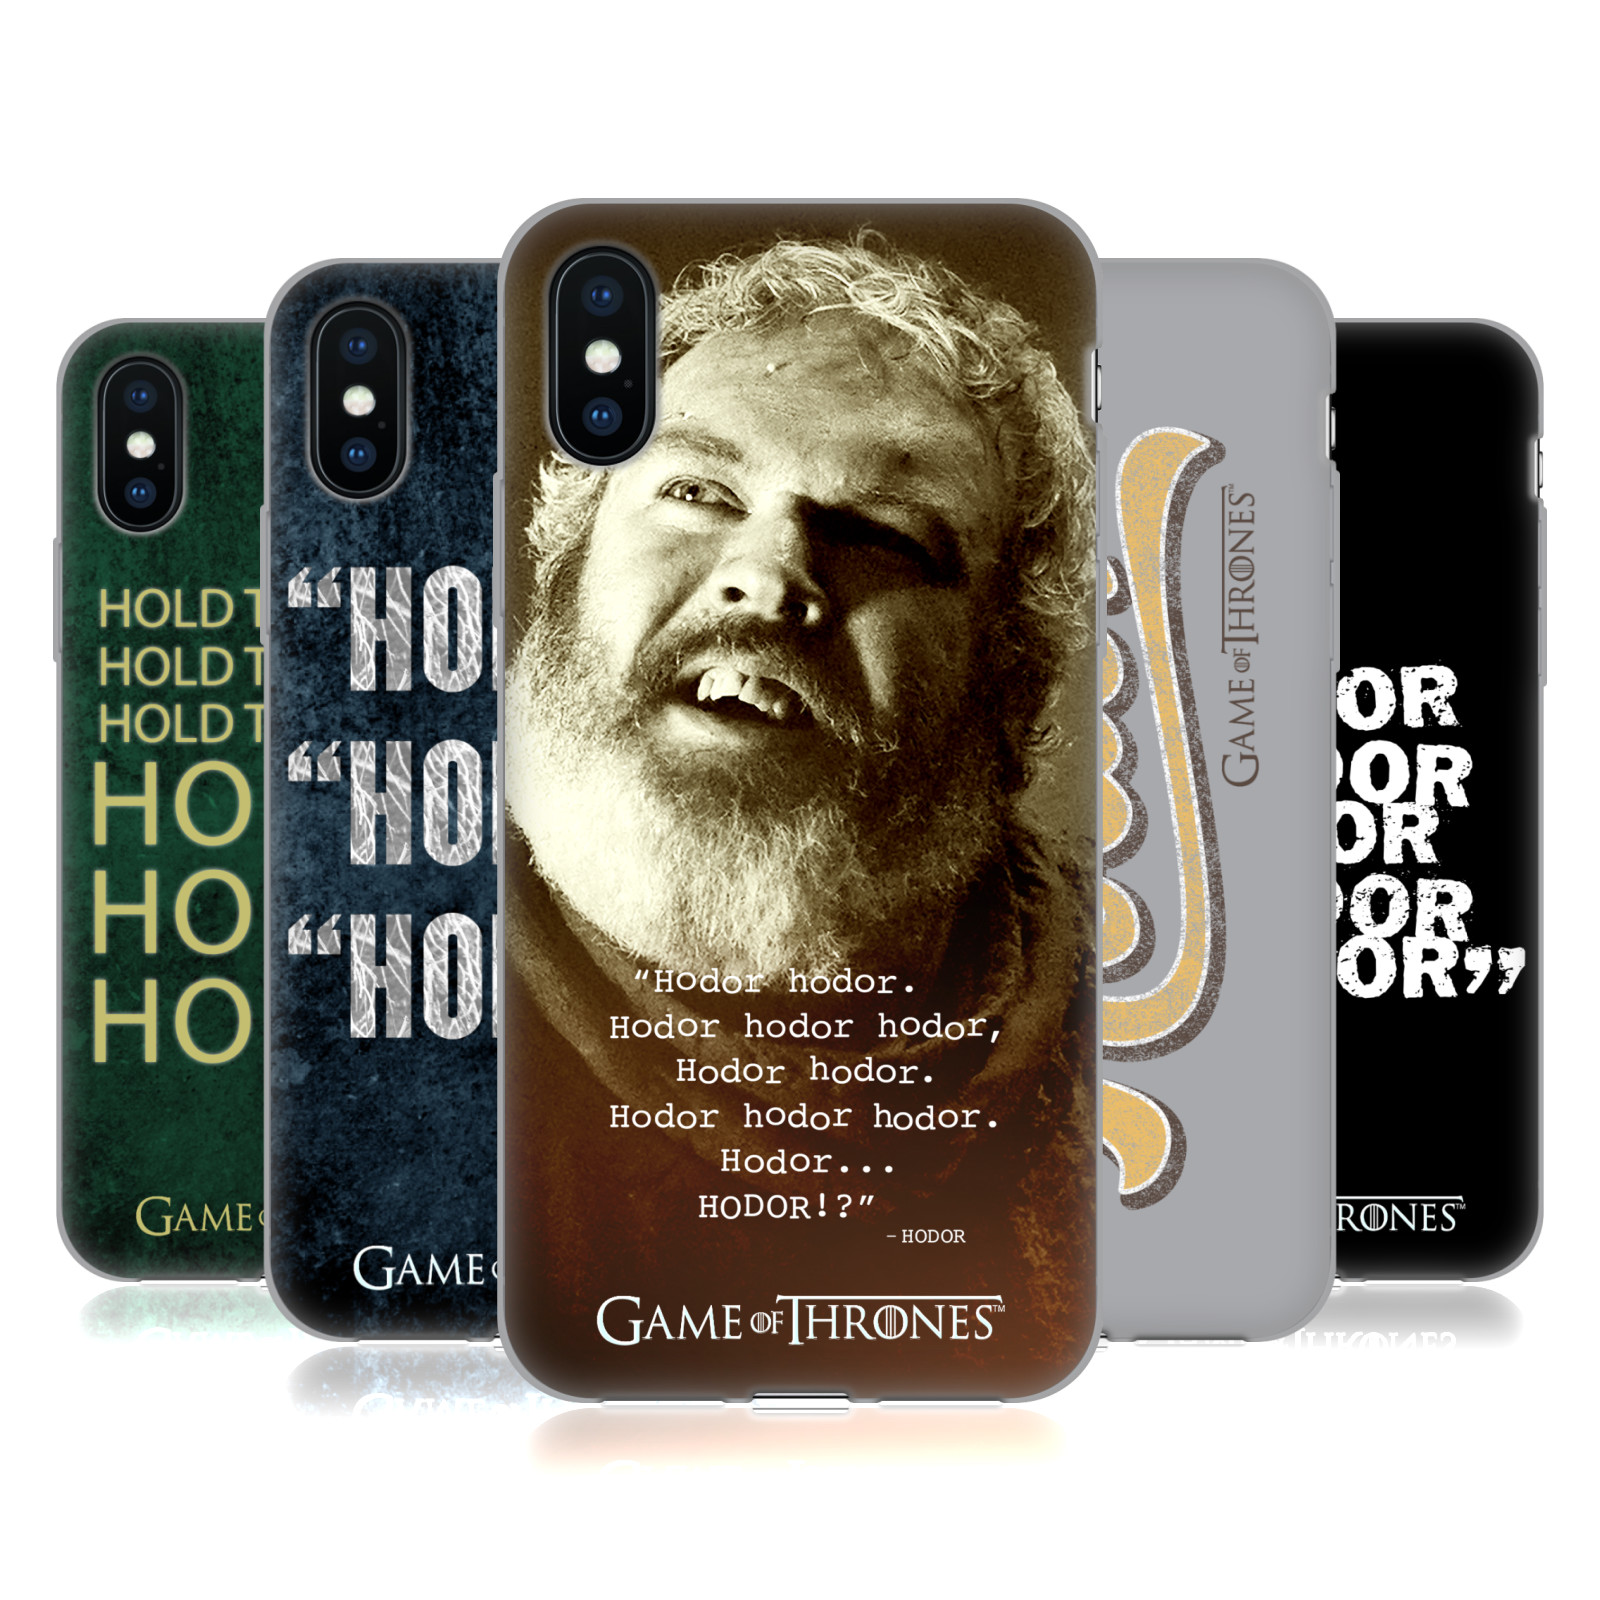 Official HBO Game of Thrones Hodor